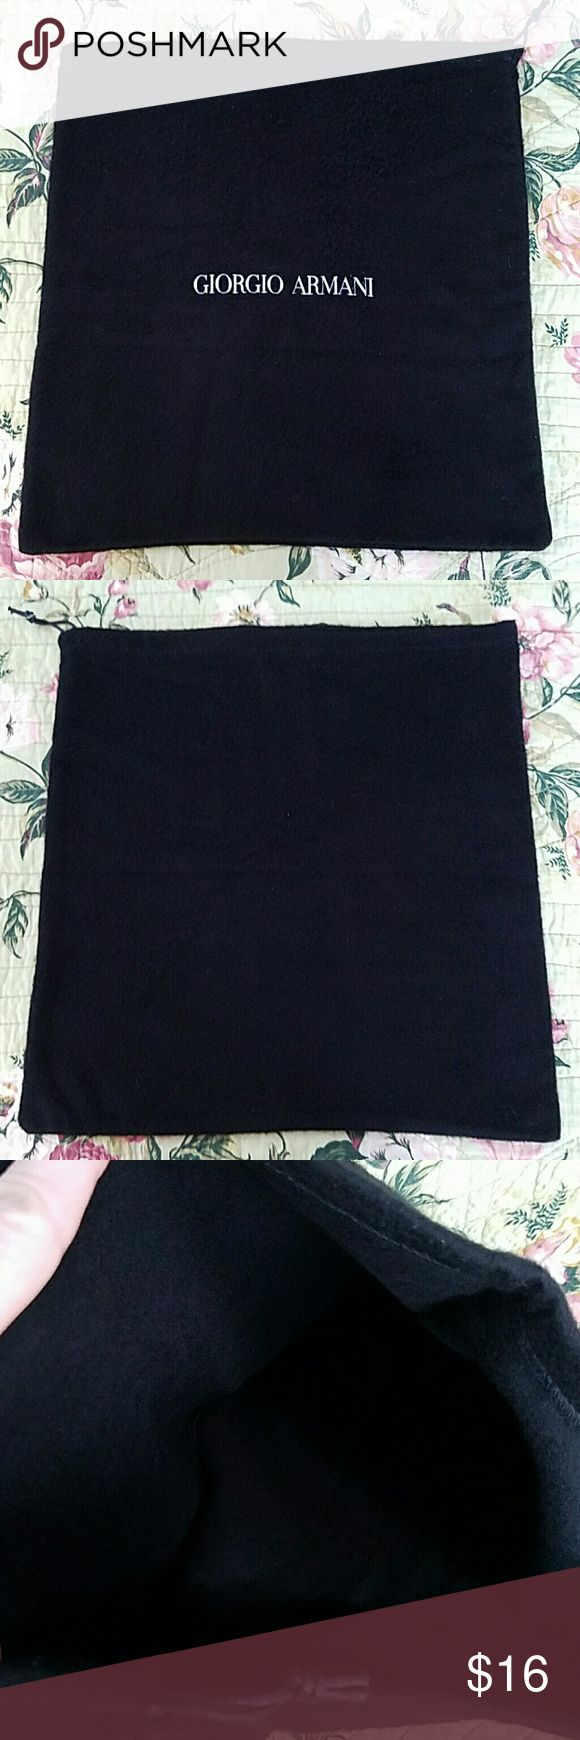 """Giorgio Armani Dust Bag Authentic Giorgio Armani Dust Bag. Measurements Approximately 13 1/2"""" W x 13 1/2"""" H not Including Drawstring Area. Excellent Condition. Giorgio Armani Bags Cosmetic Bags & Cases"""